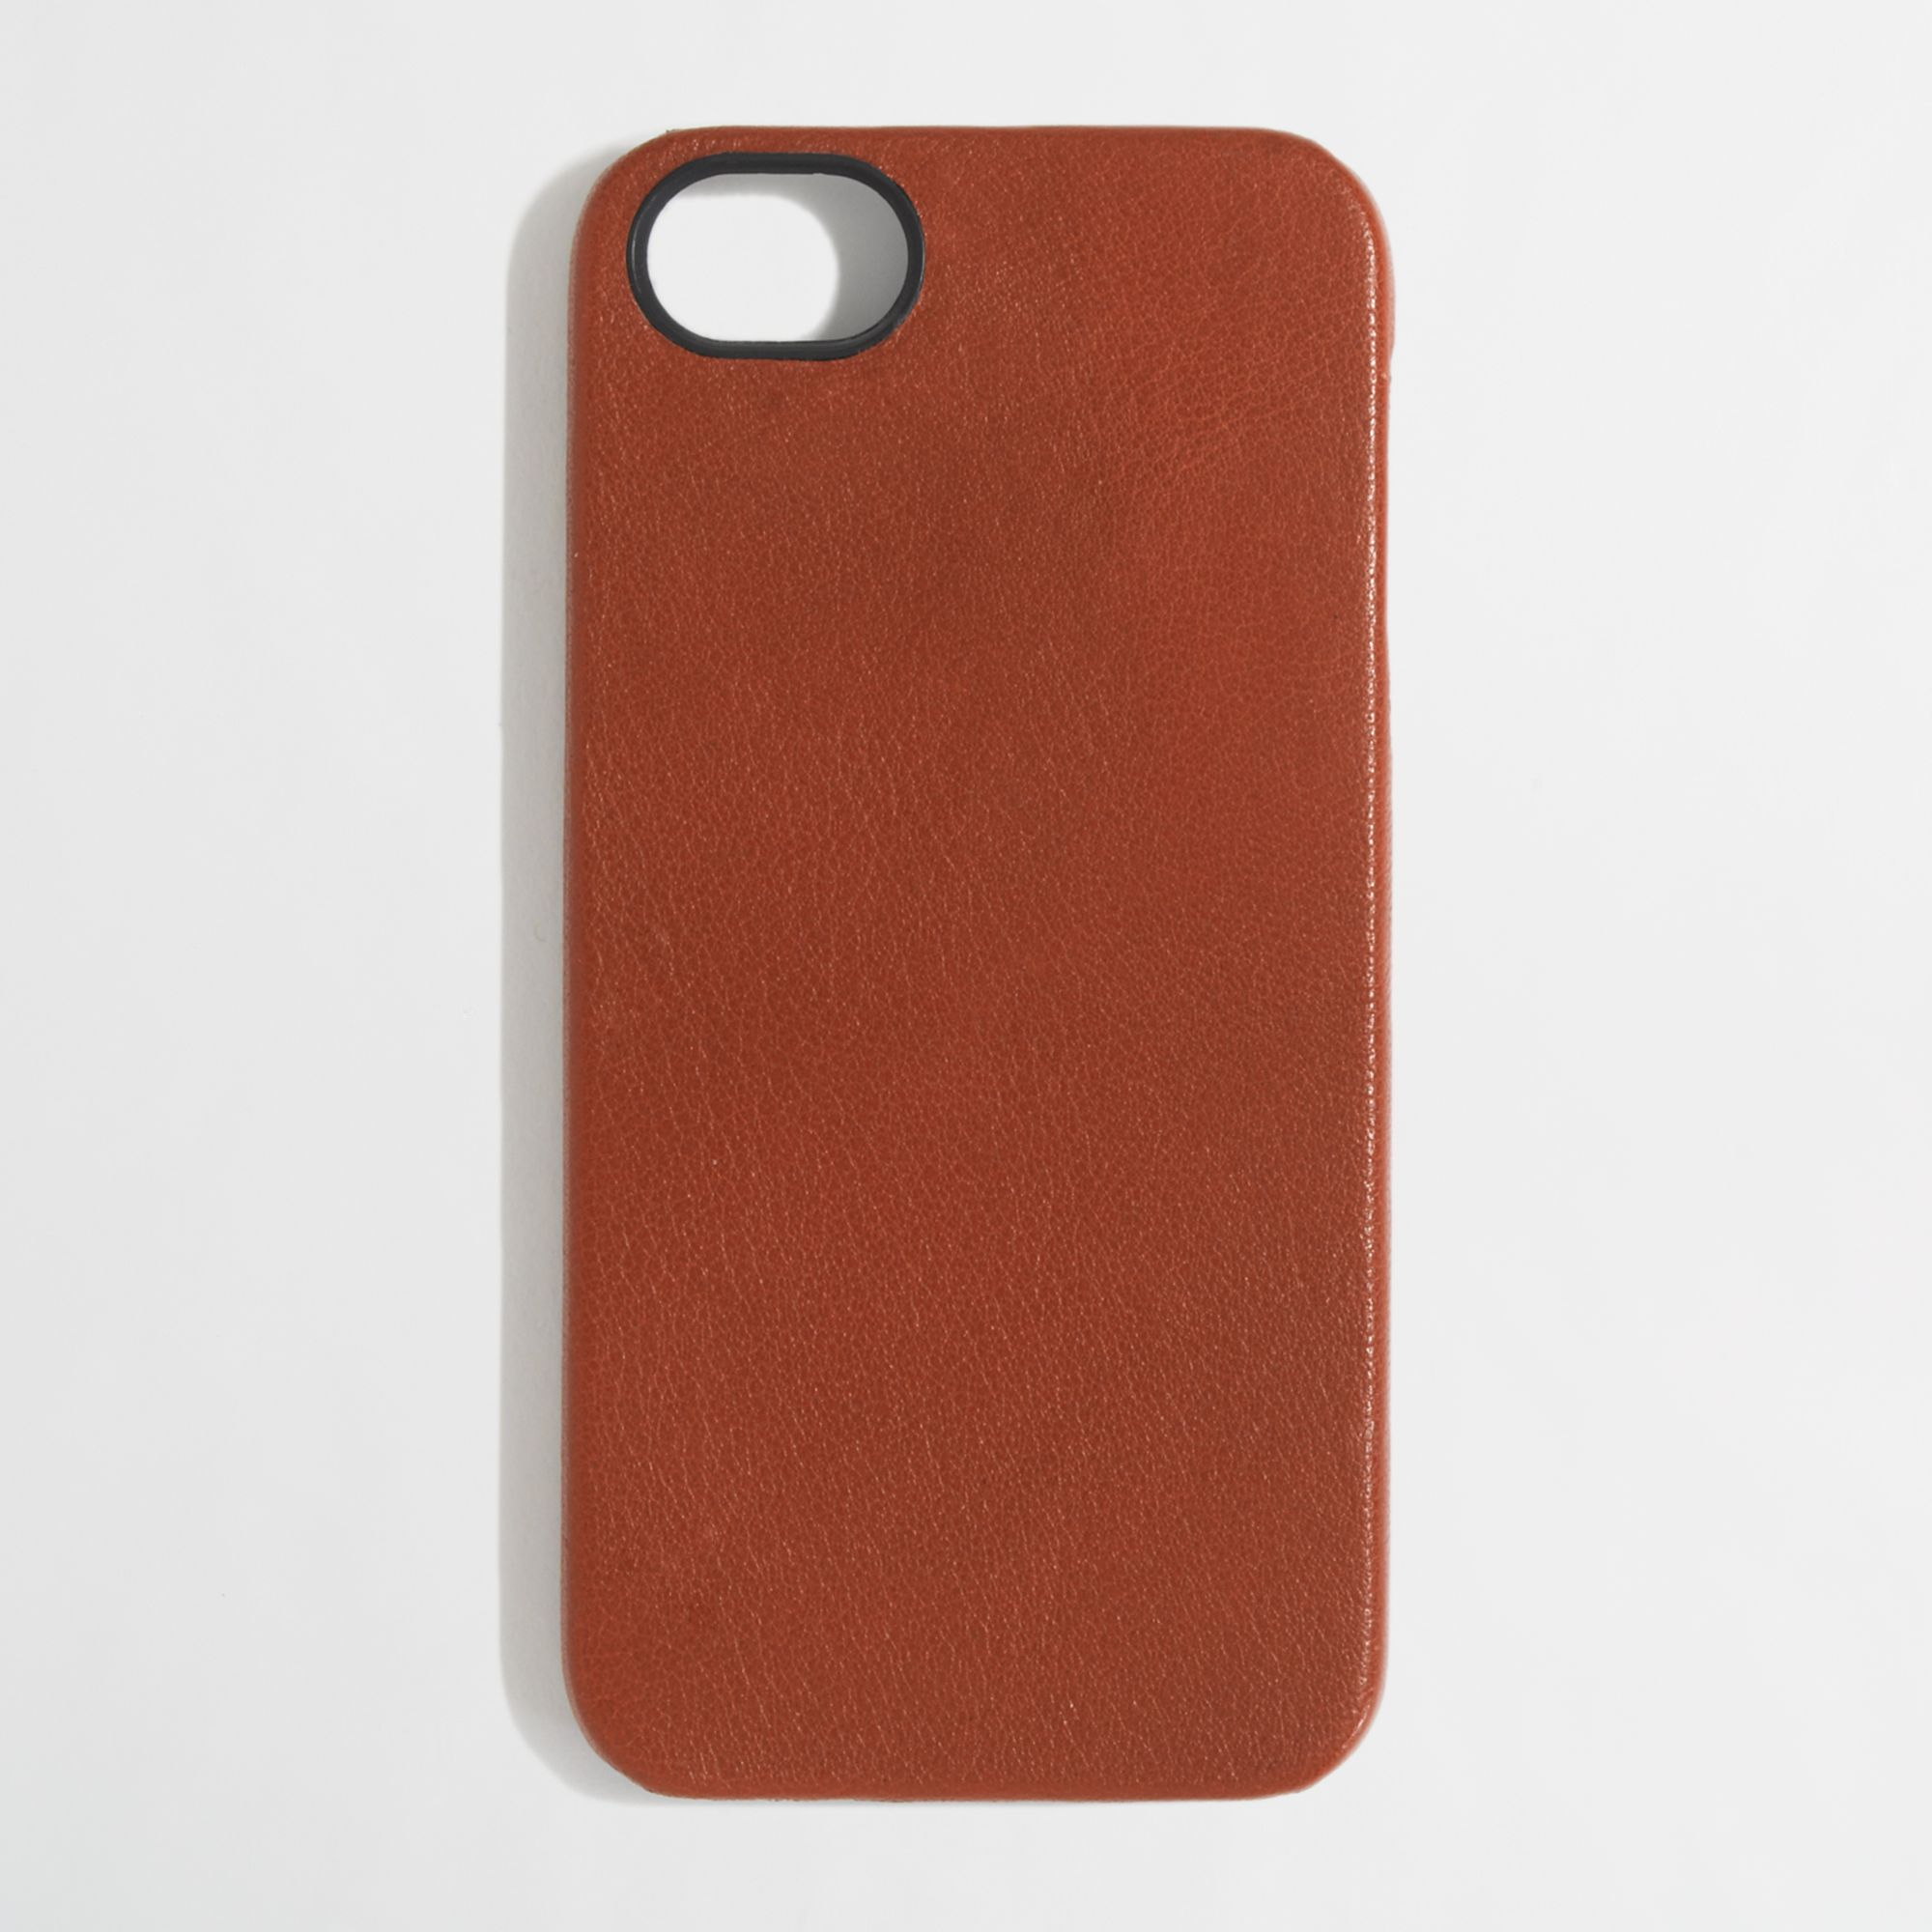 iPhone Cases + Tech - madewell.com